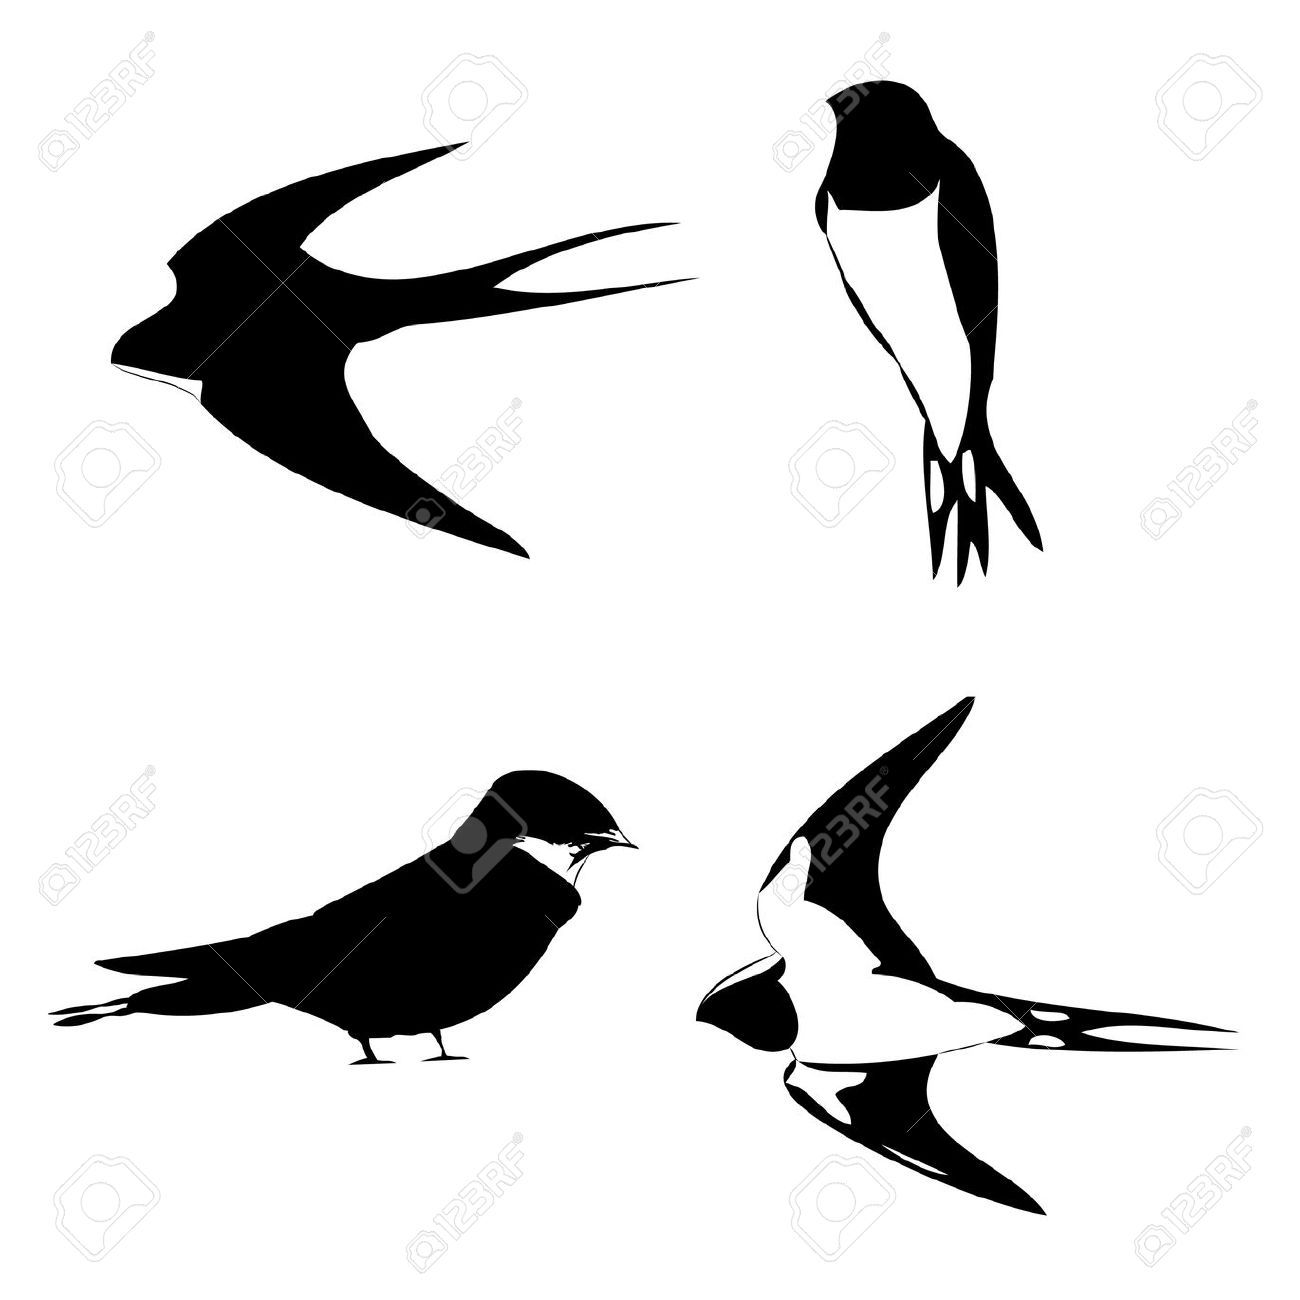 1300x1300 Images For Gt Swallow Tattoo Silhouette Personal Interest